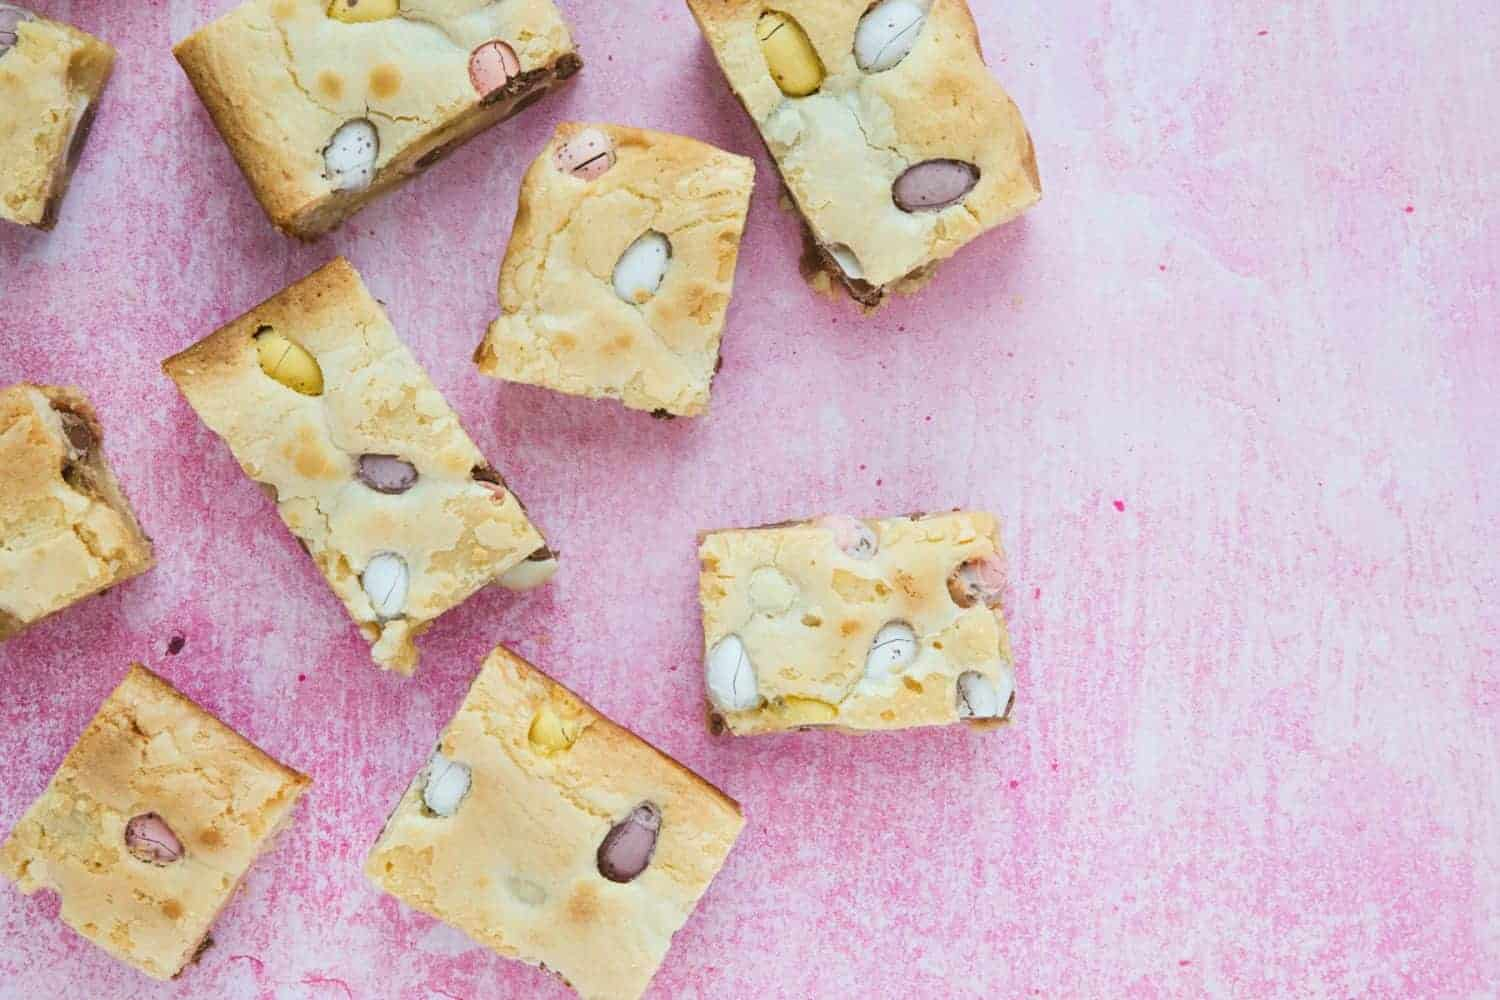 Slices of blondie on a pink background.